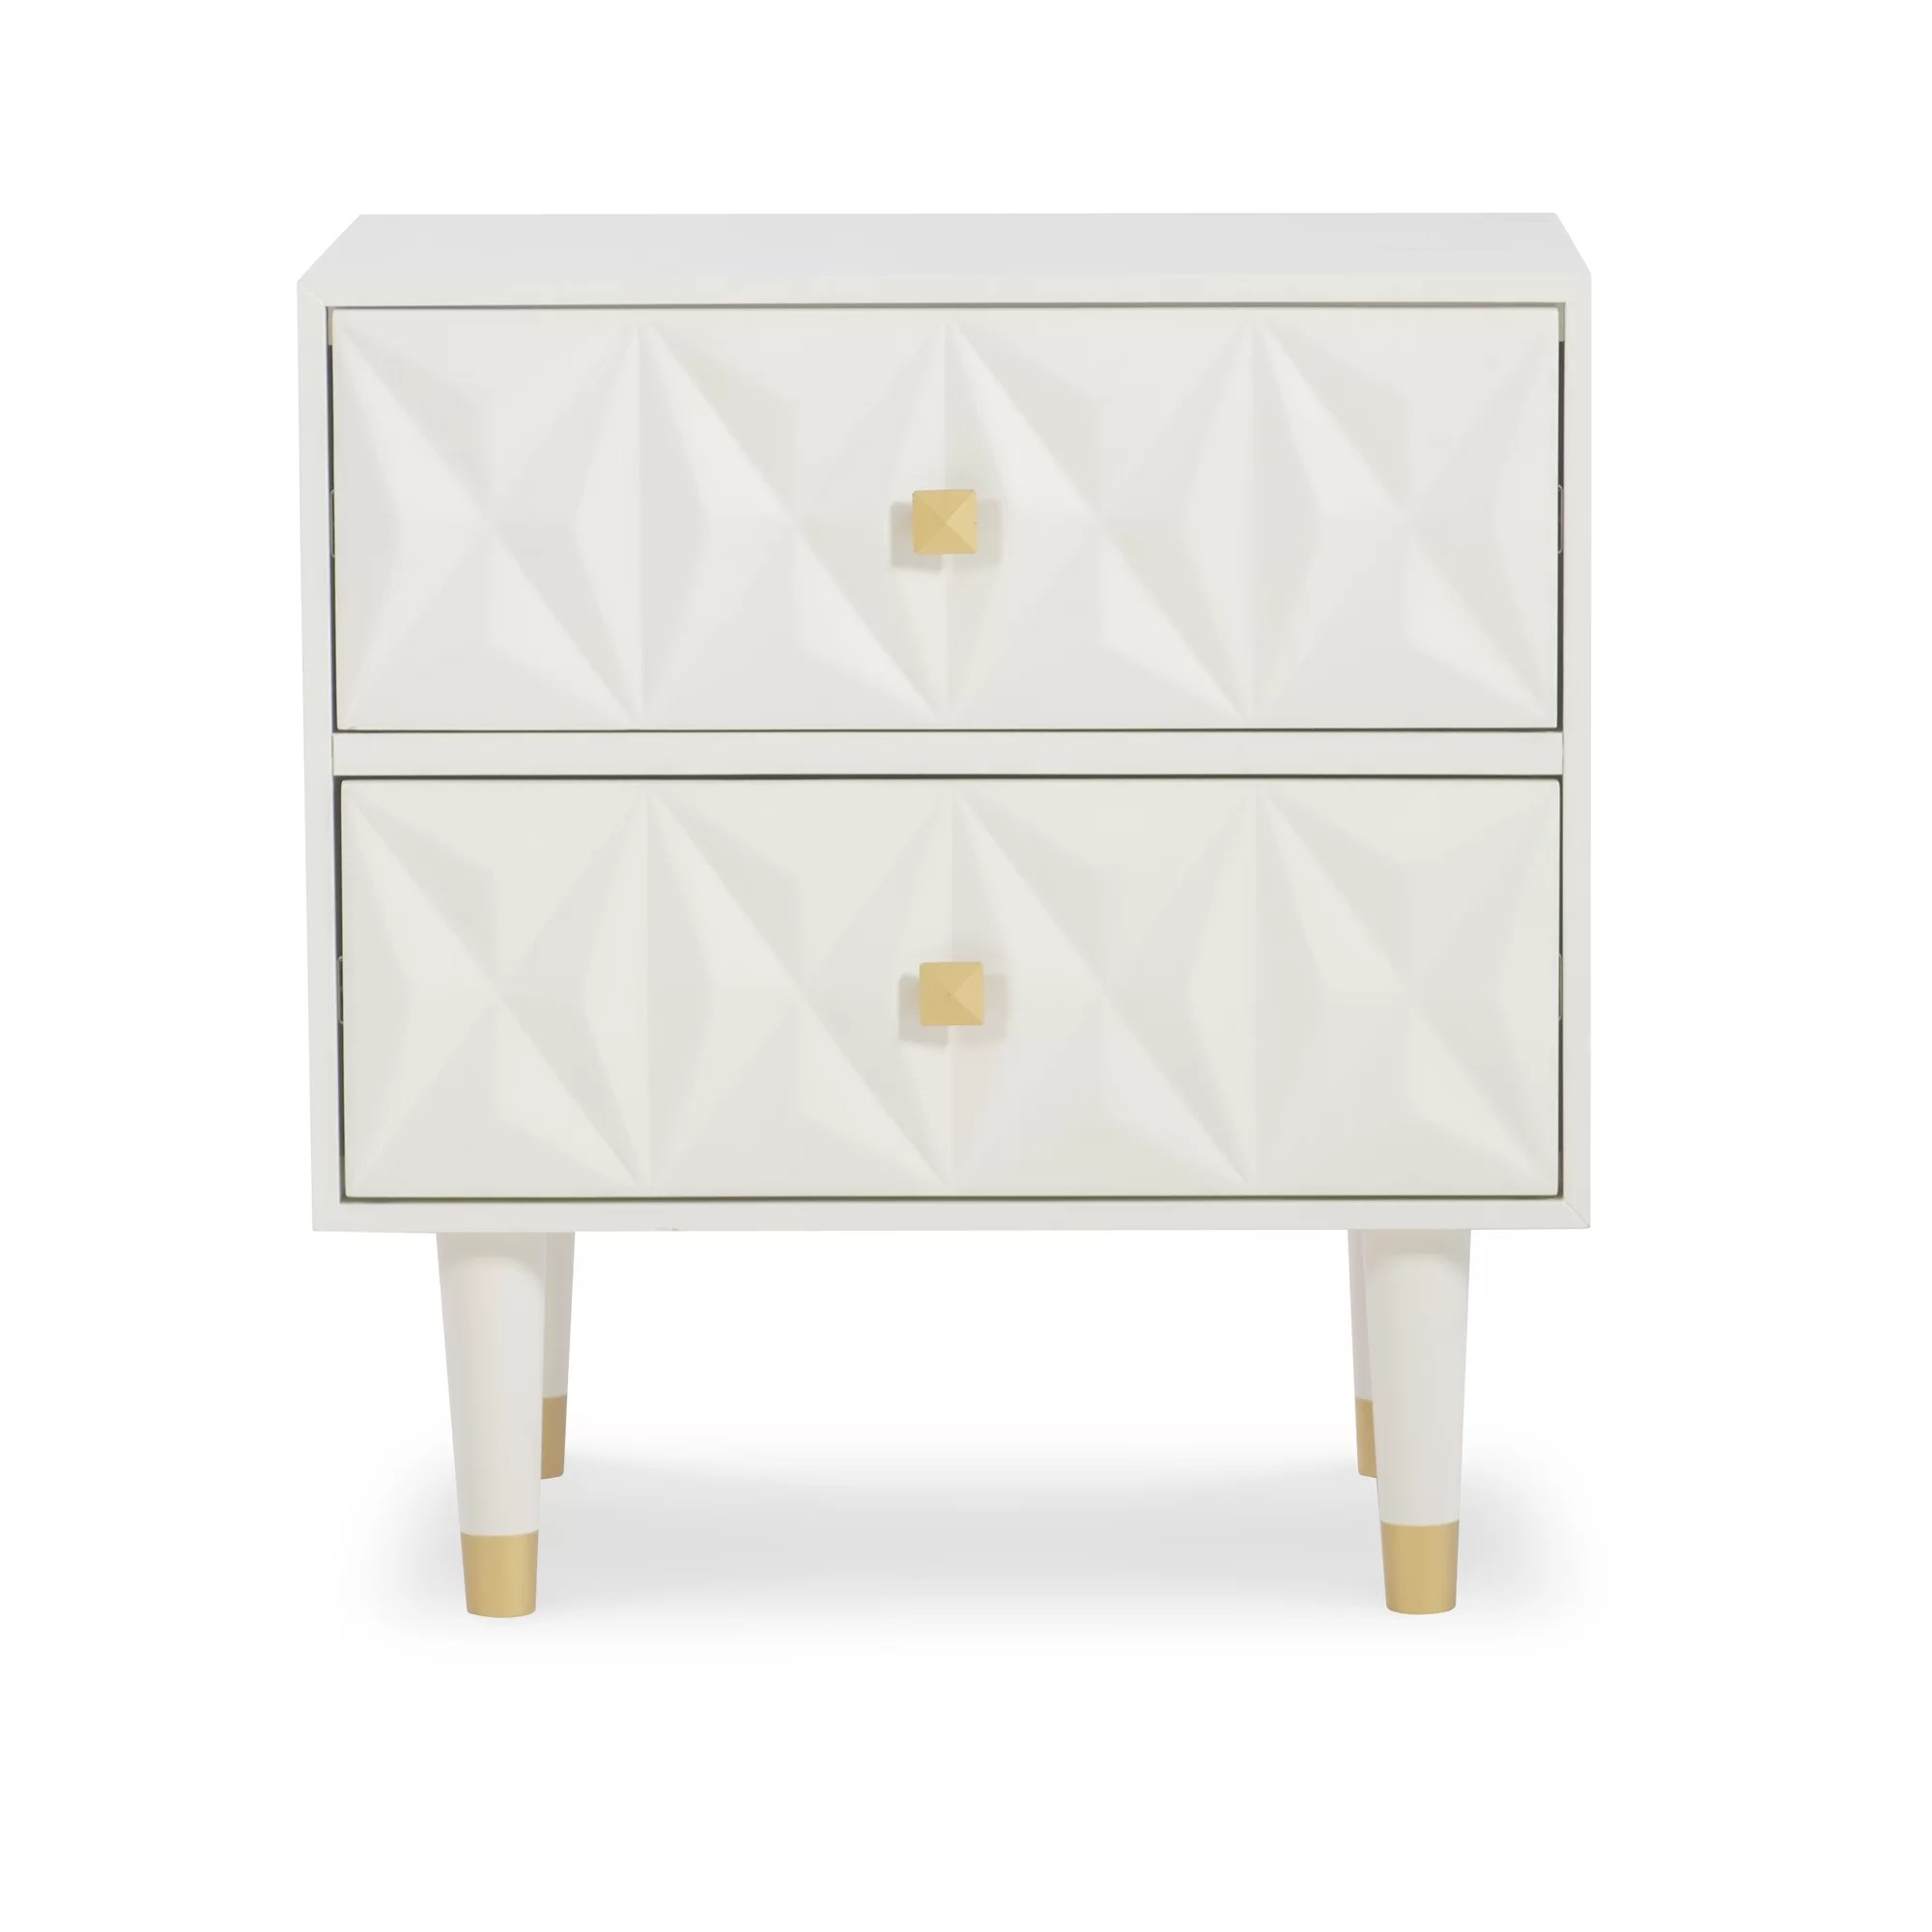 Wayfair Shopping For Nightstands We Have Some Ideas For